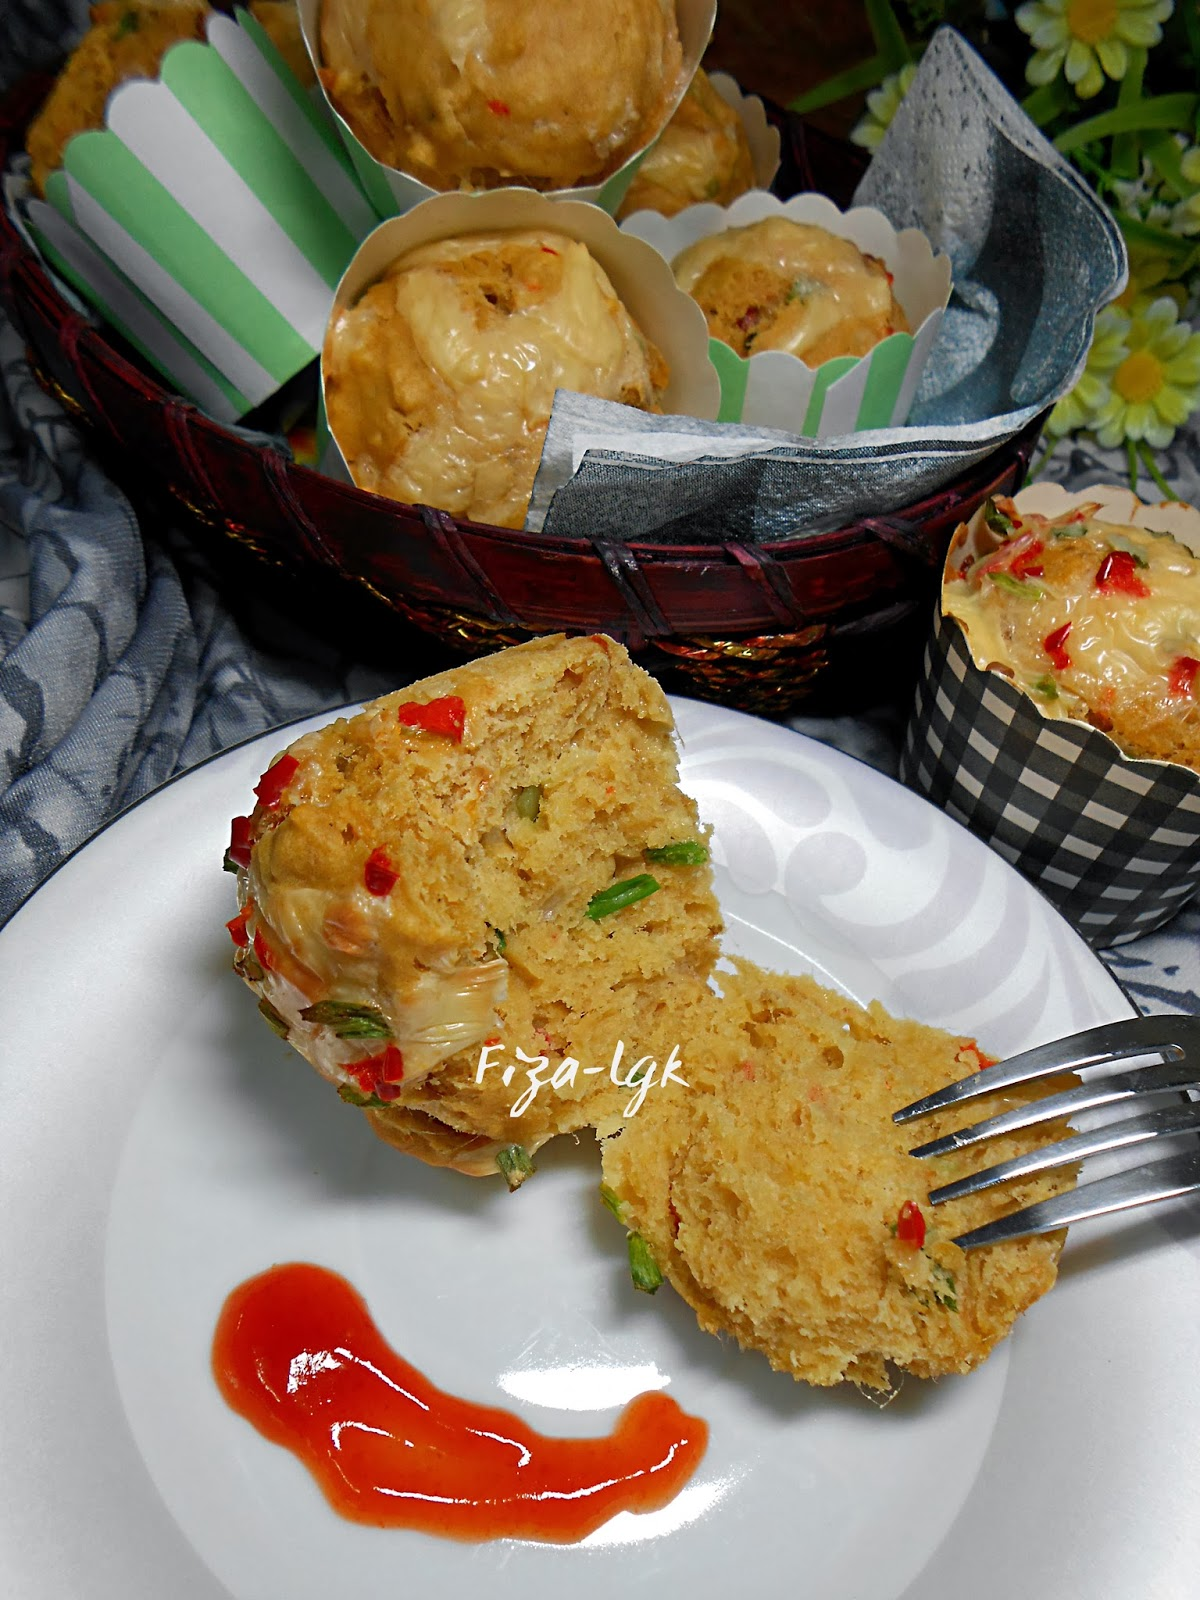 TUNA SAVOURY MUFFIN